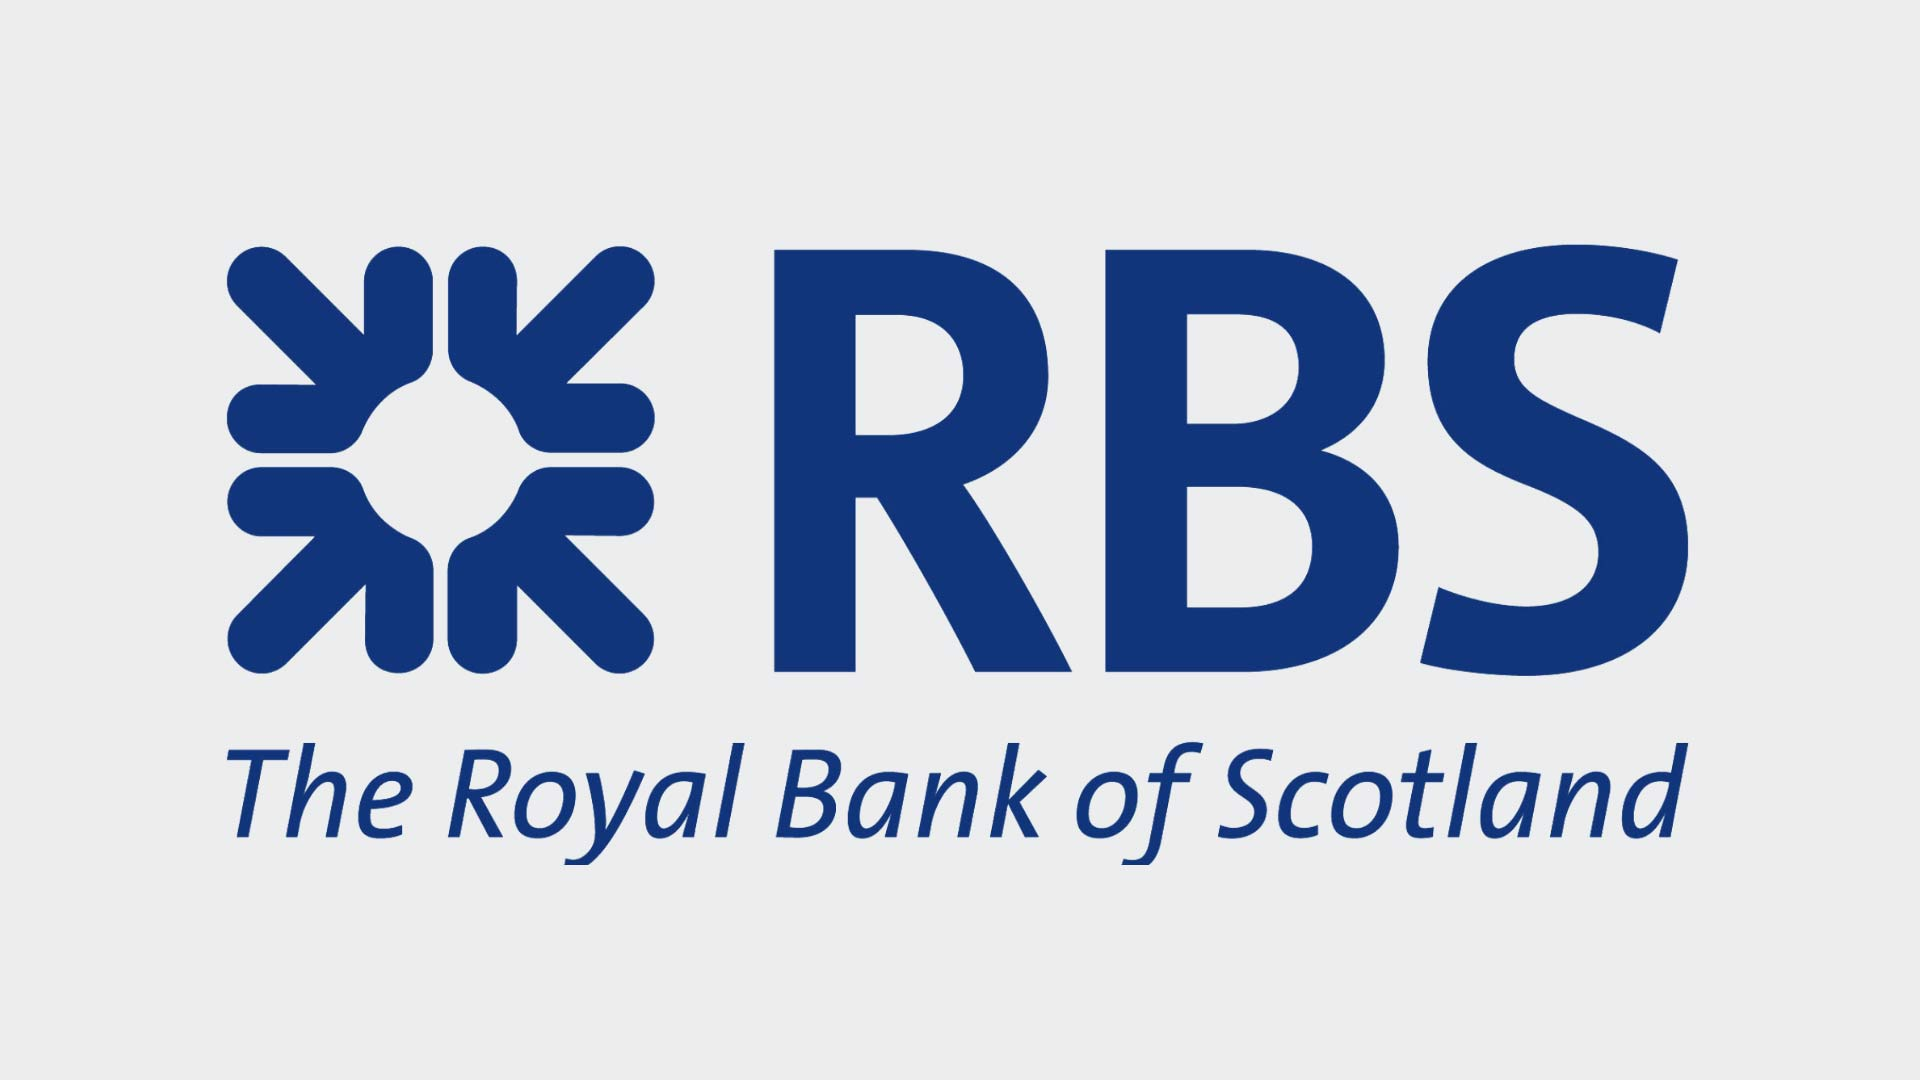 Emotional Intelligence and Reflective Practice for RBS Interns